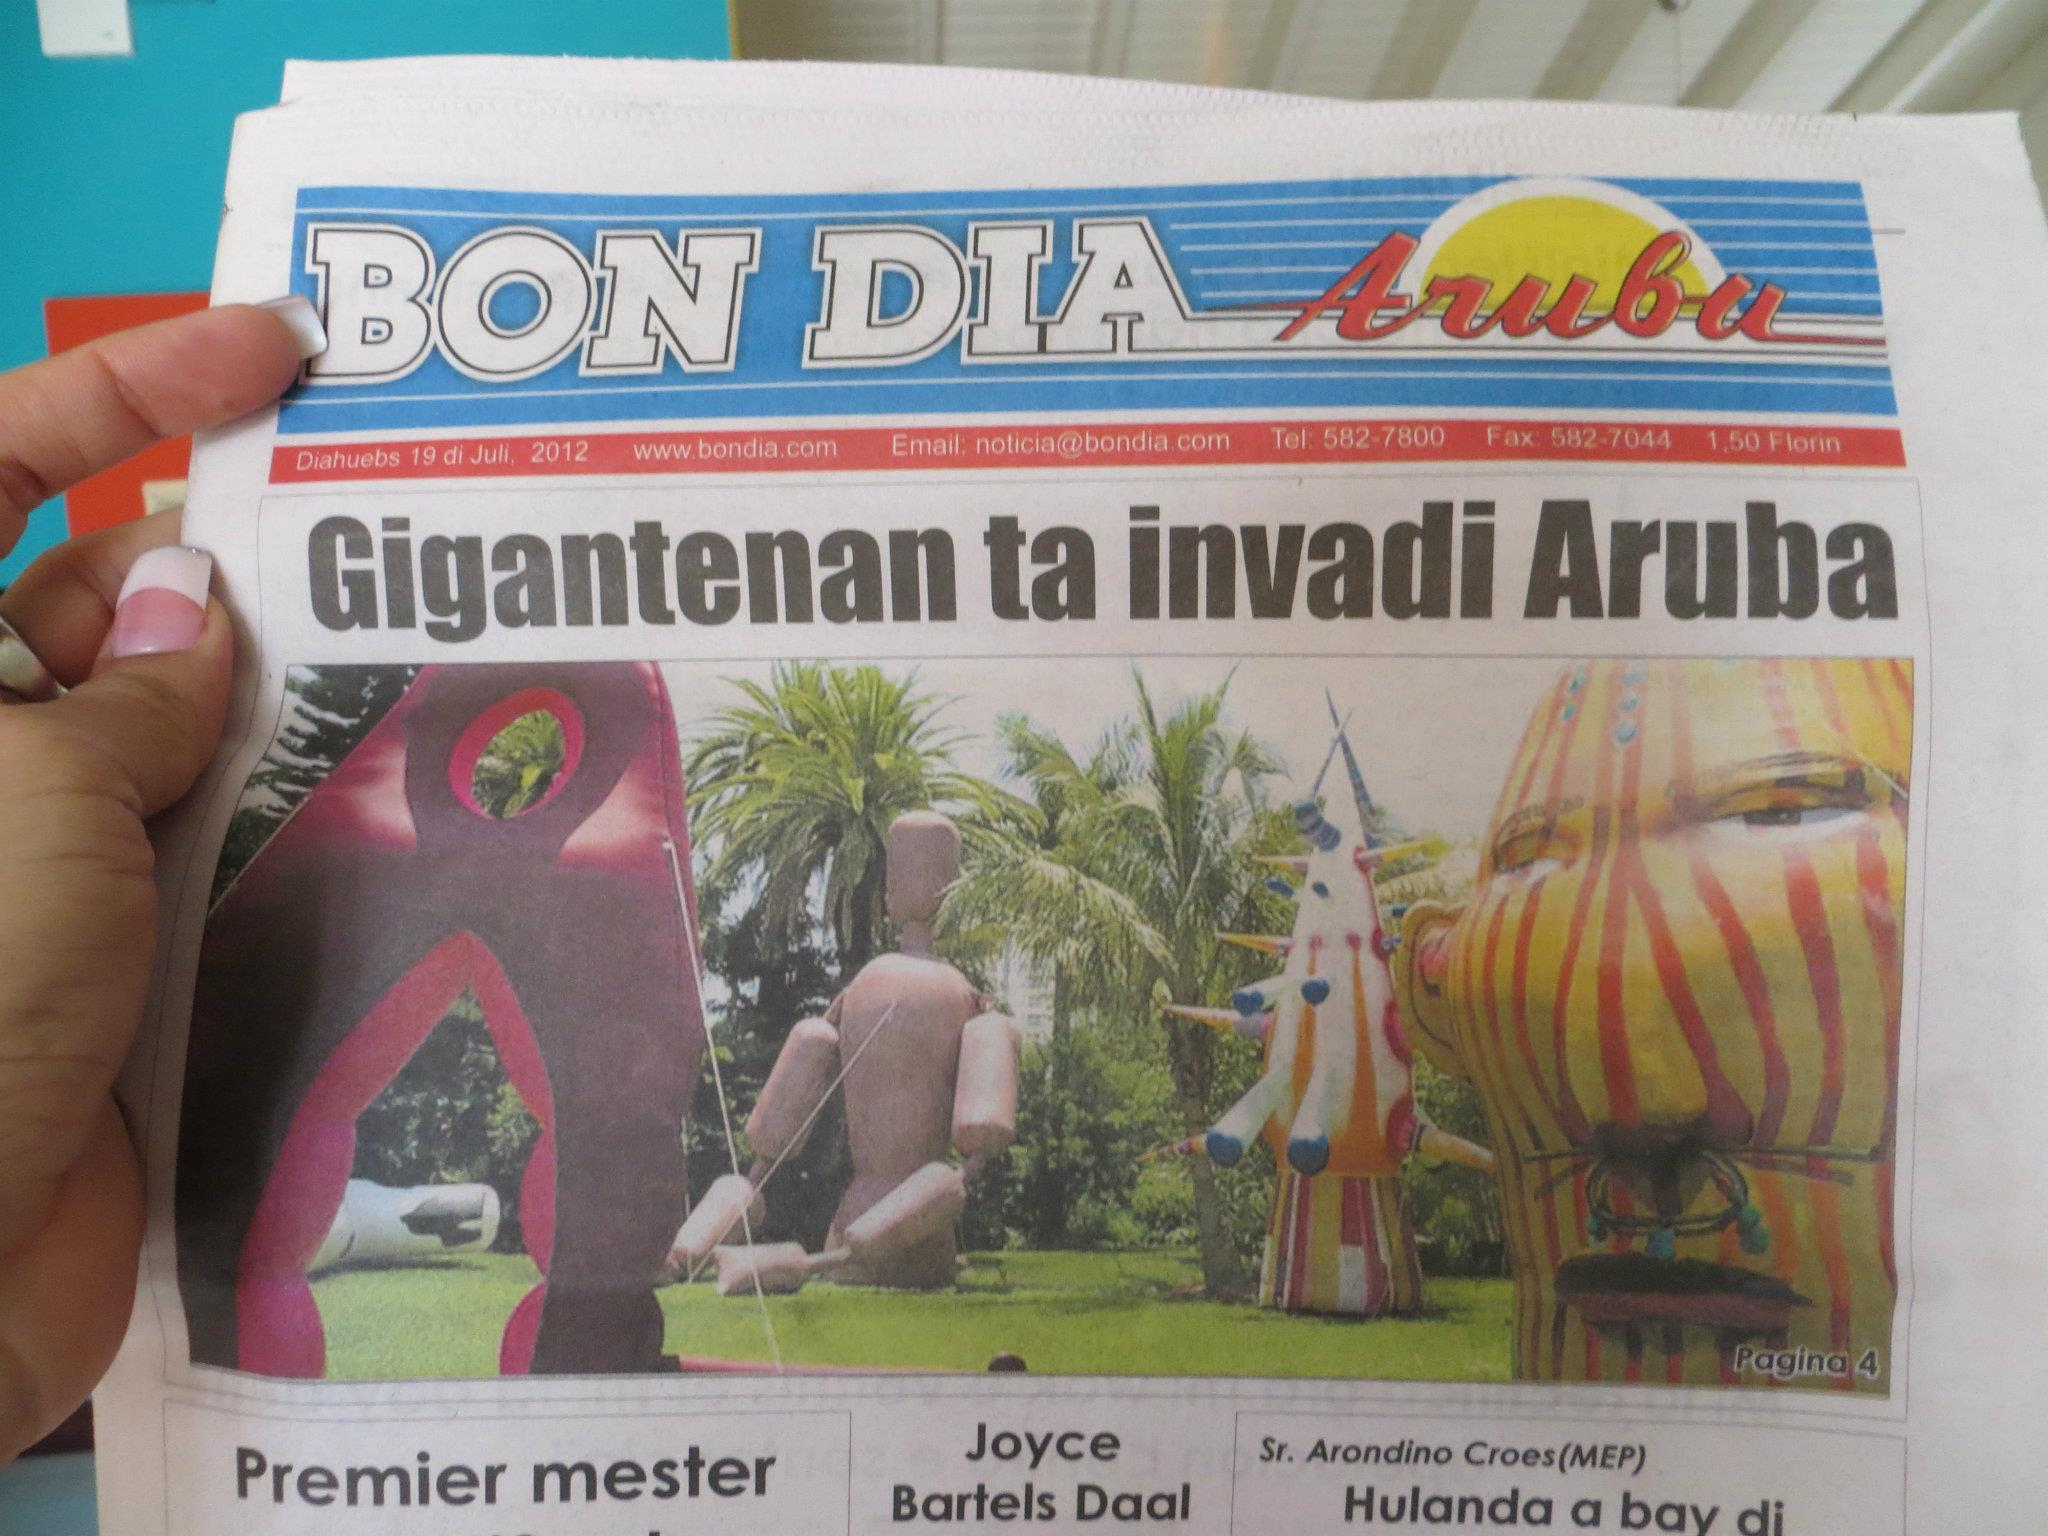 GIANTS_Press_Arubabondia